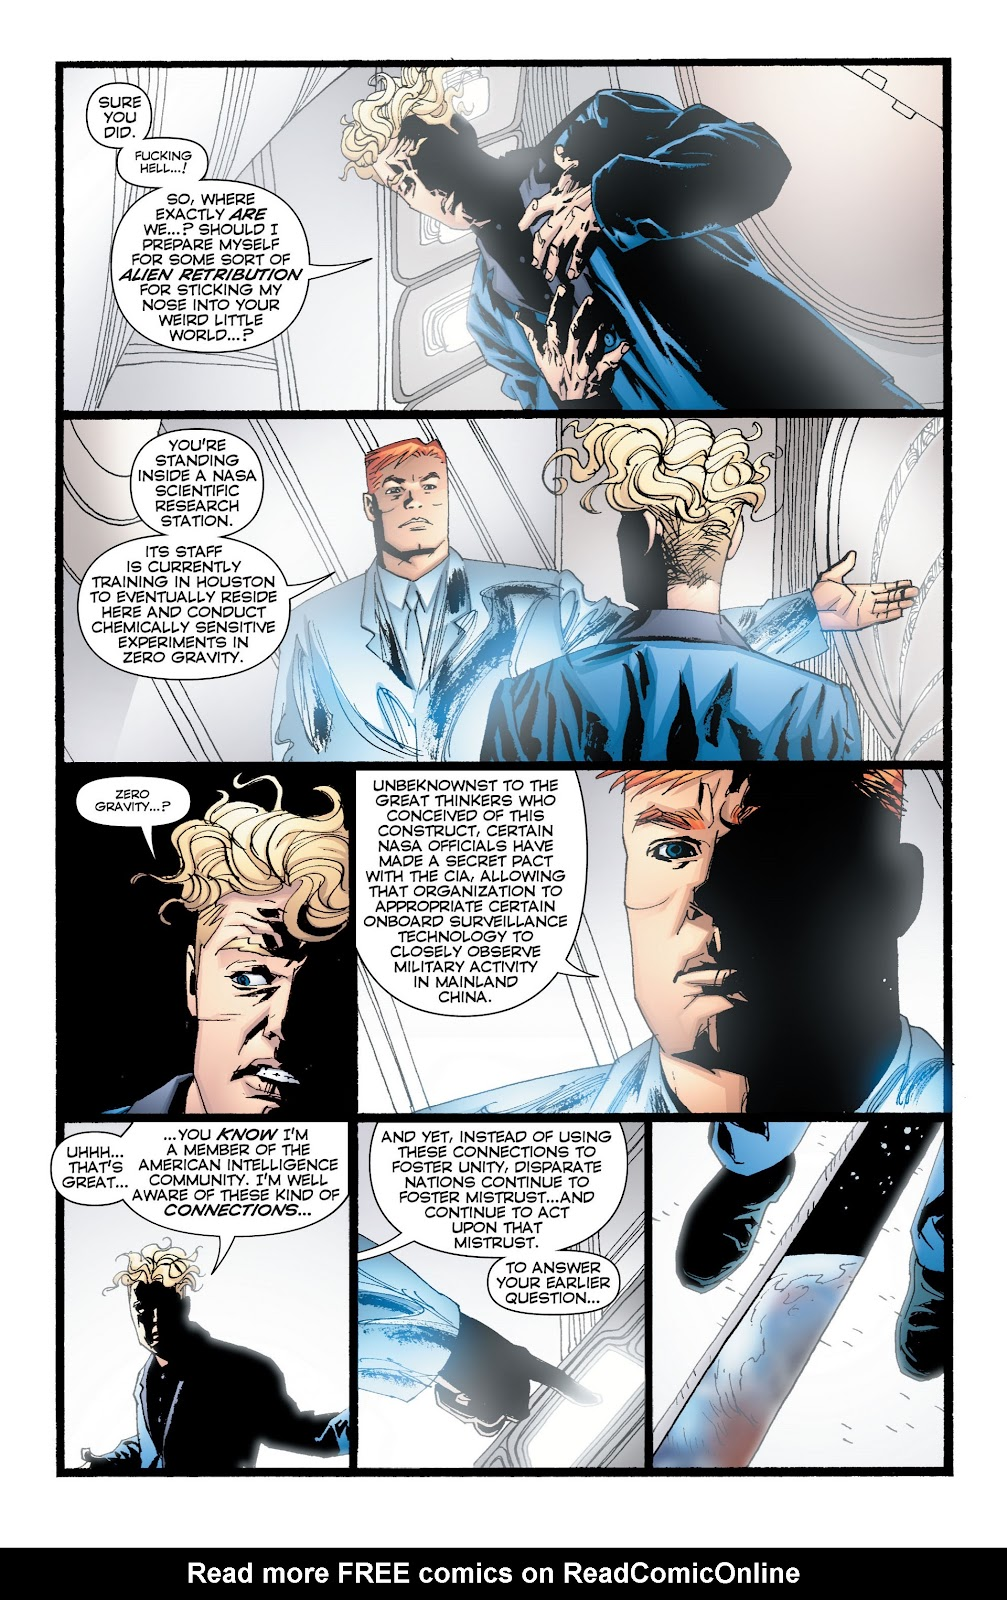 Wildcats Version 3.0 Issue #17 #17 - English 17